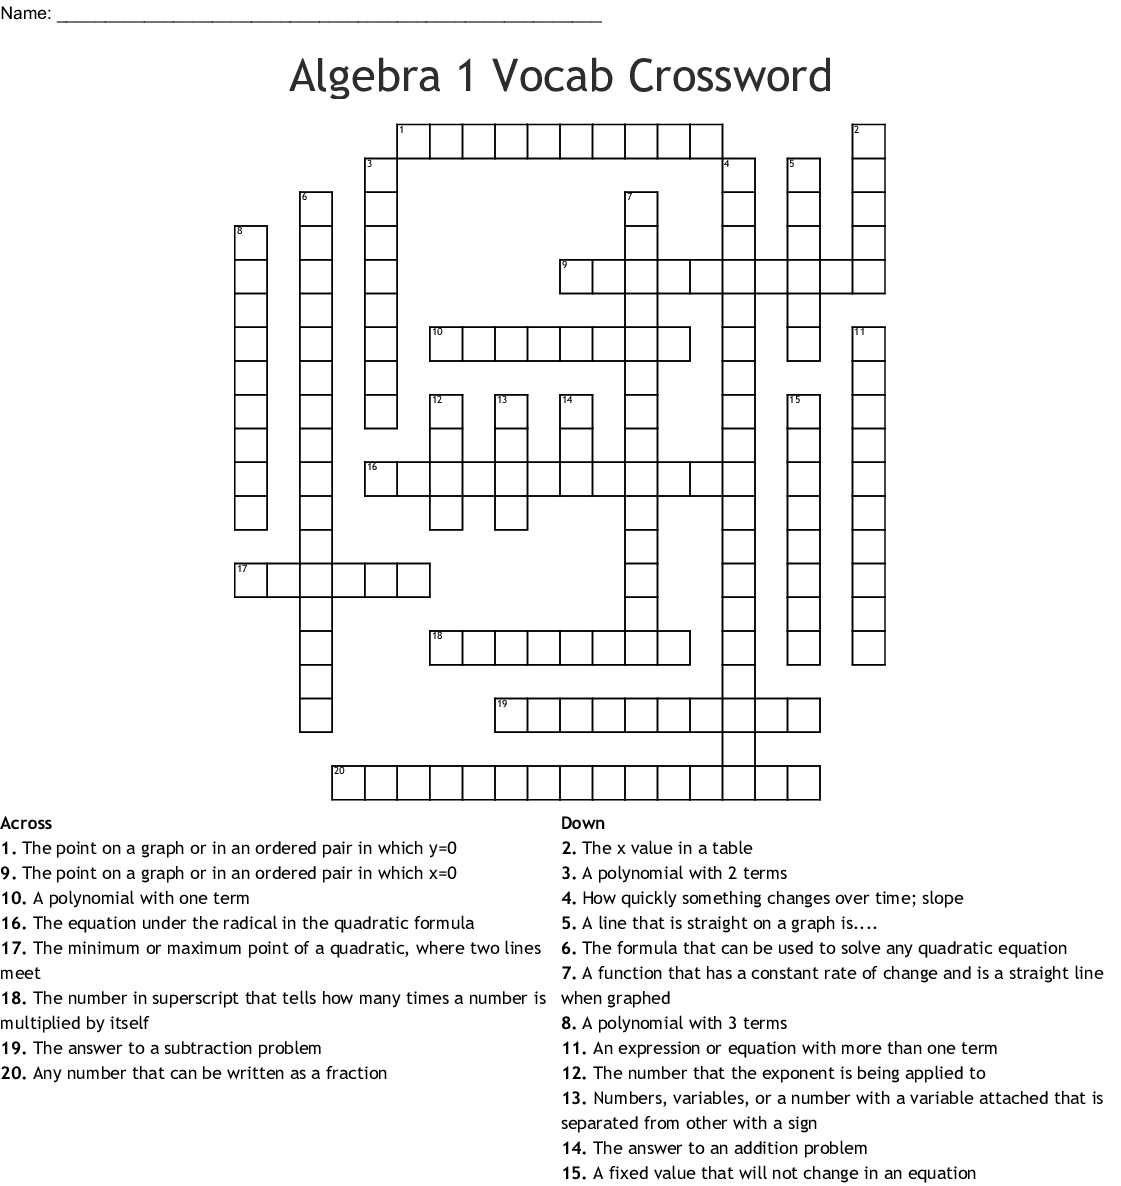 Algebra 1 Vocab Crossword - Wordmint - Algebra 1 Crossword Puzzles Printable